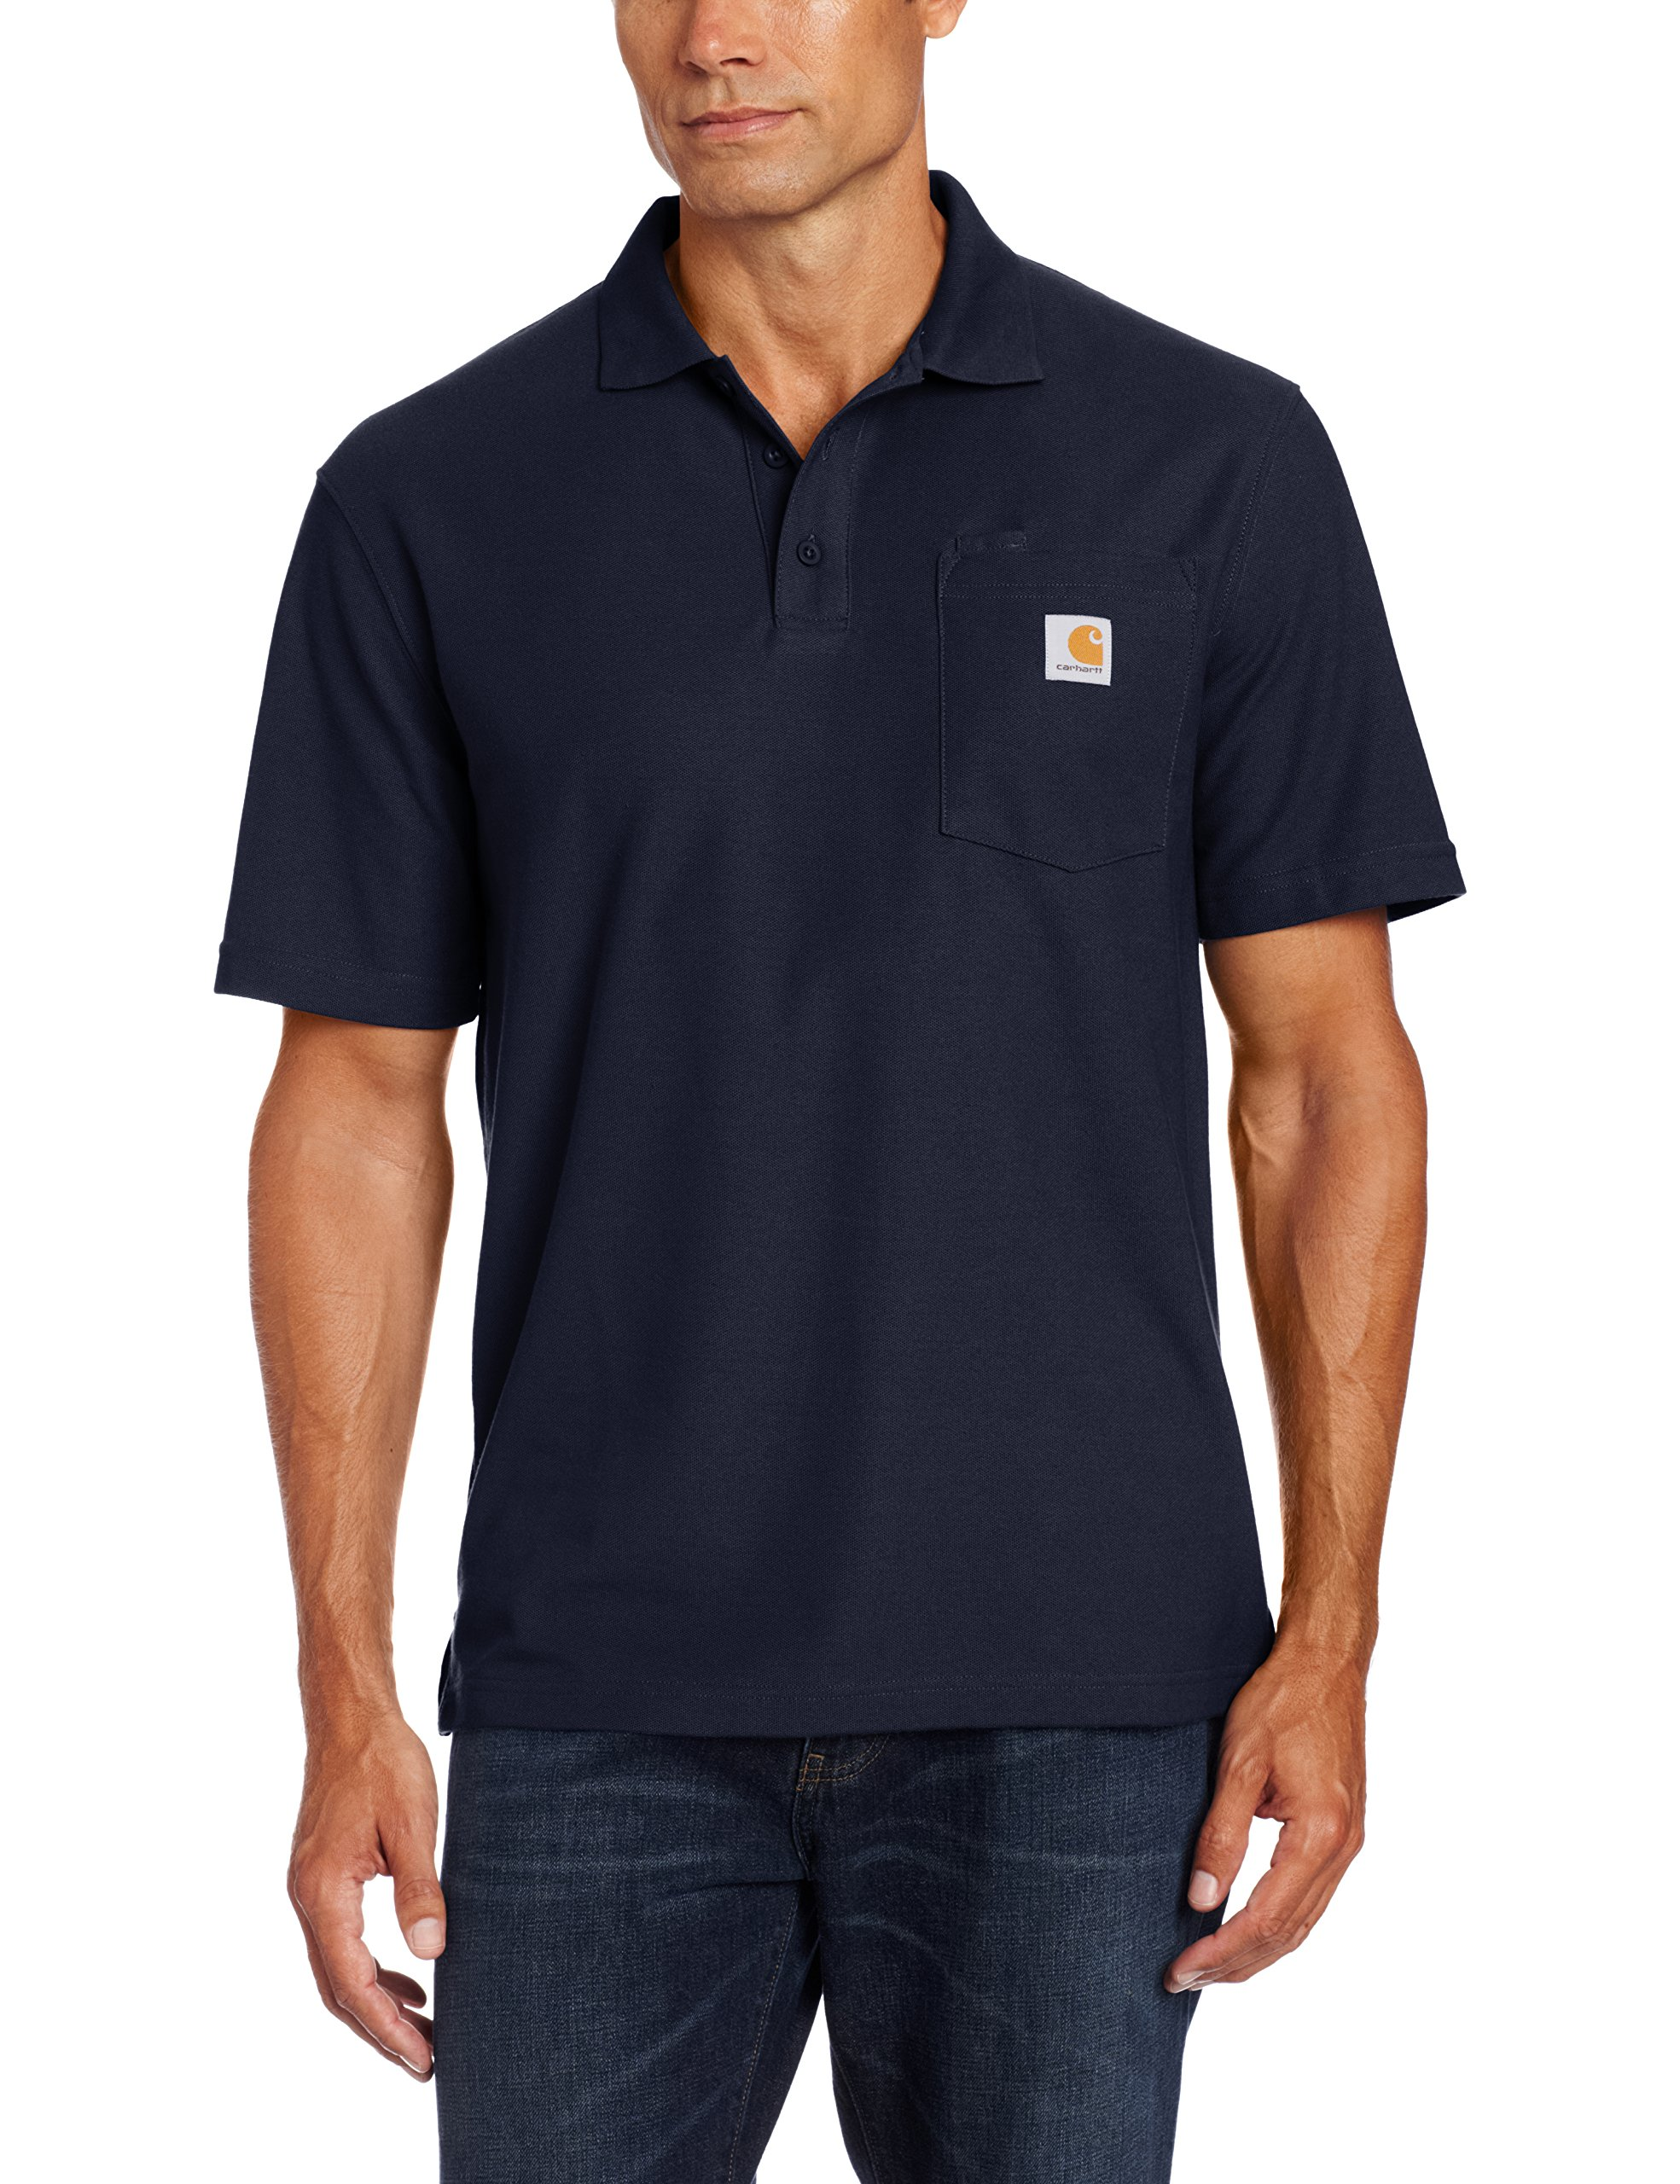 Carhartt Men's Contractors Work Pocket Polo Original Fit,Navy,X-Large by Carhartt